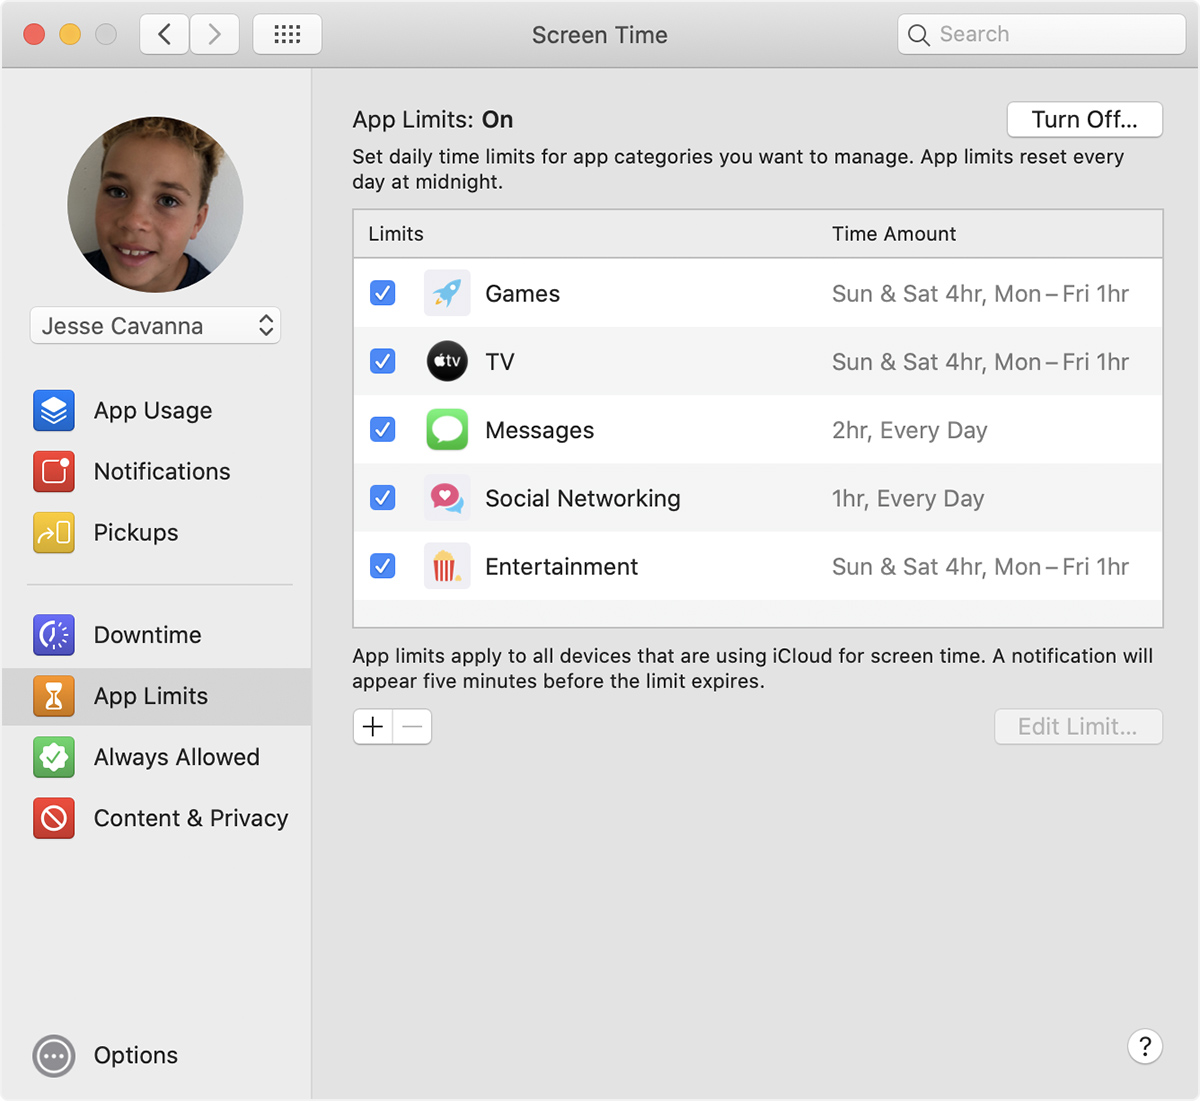 Screen Time preferences: App Limits